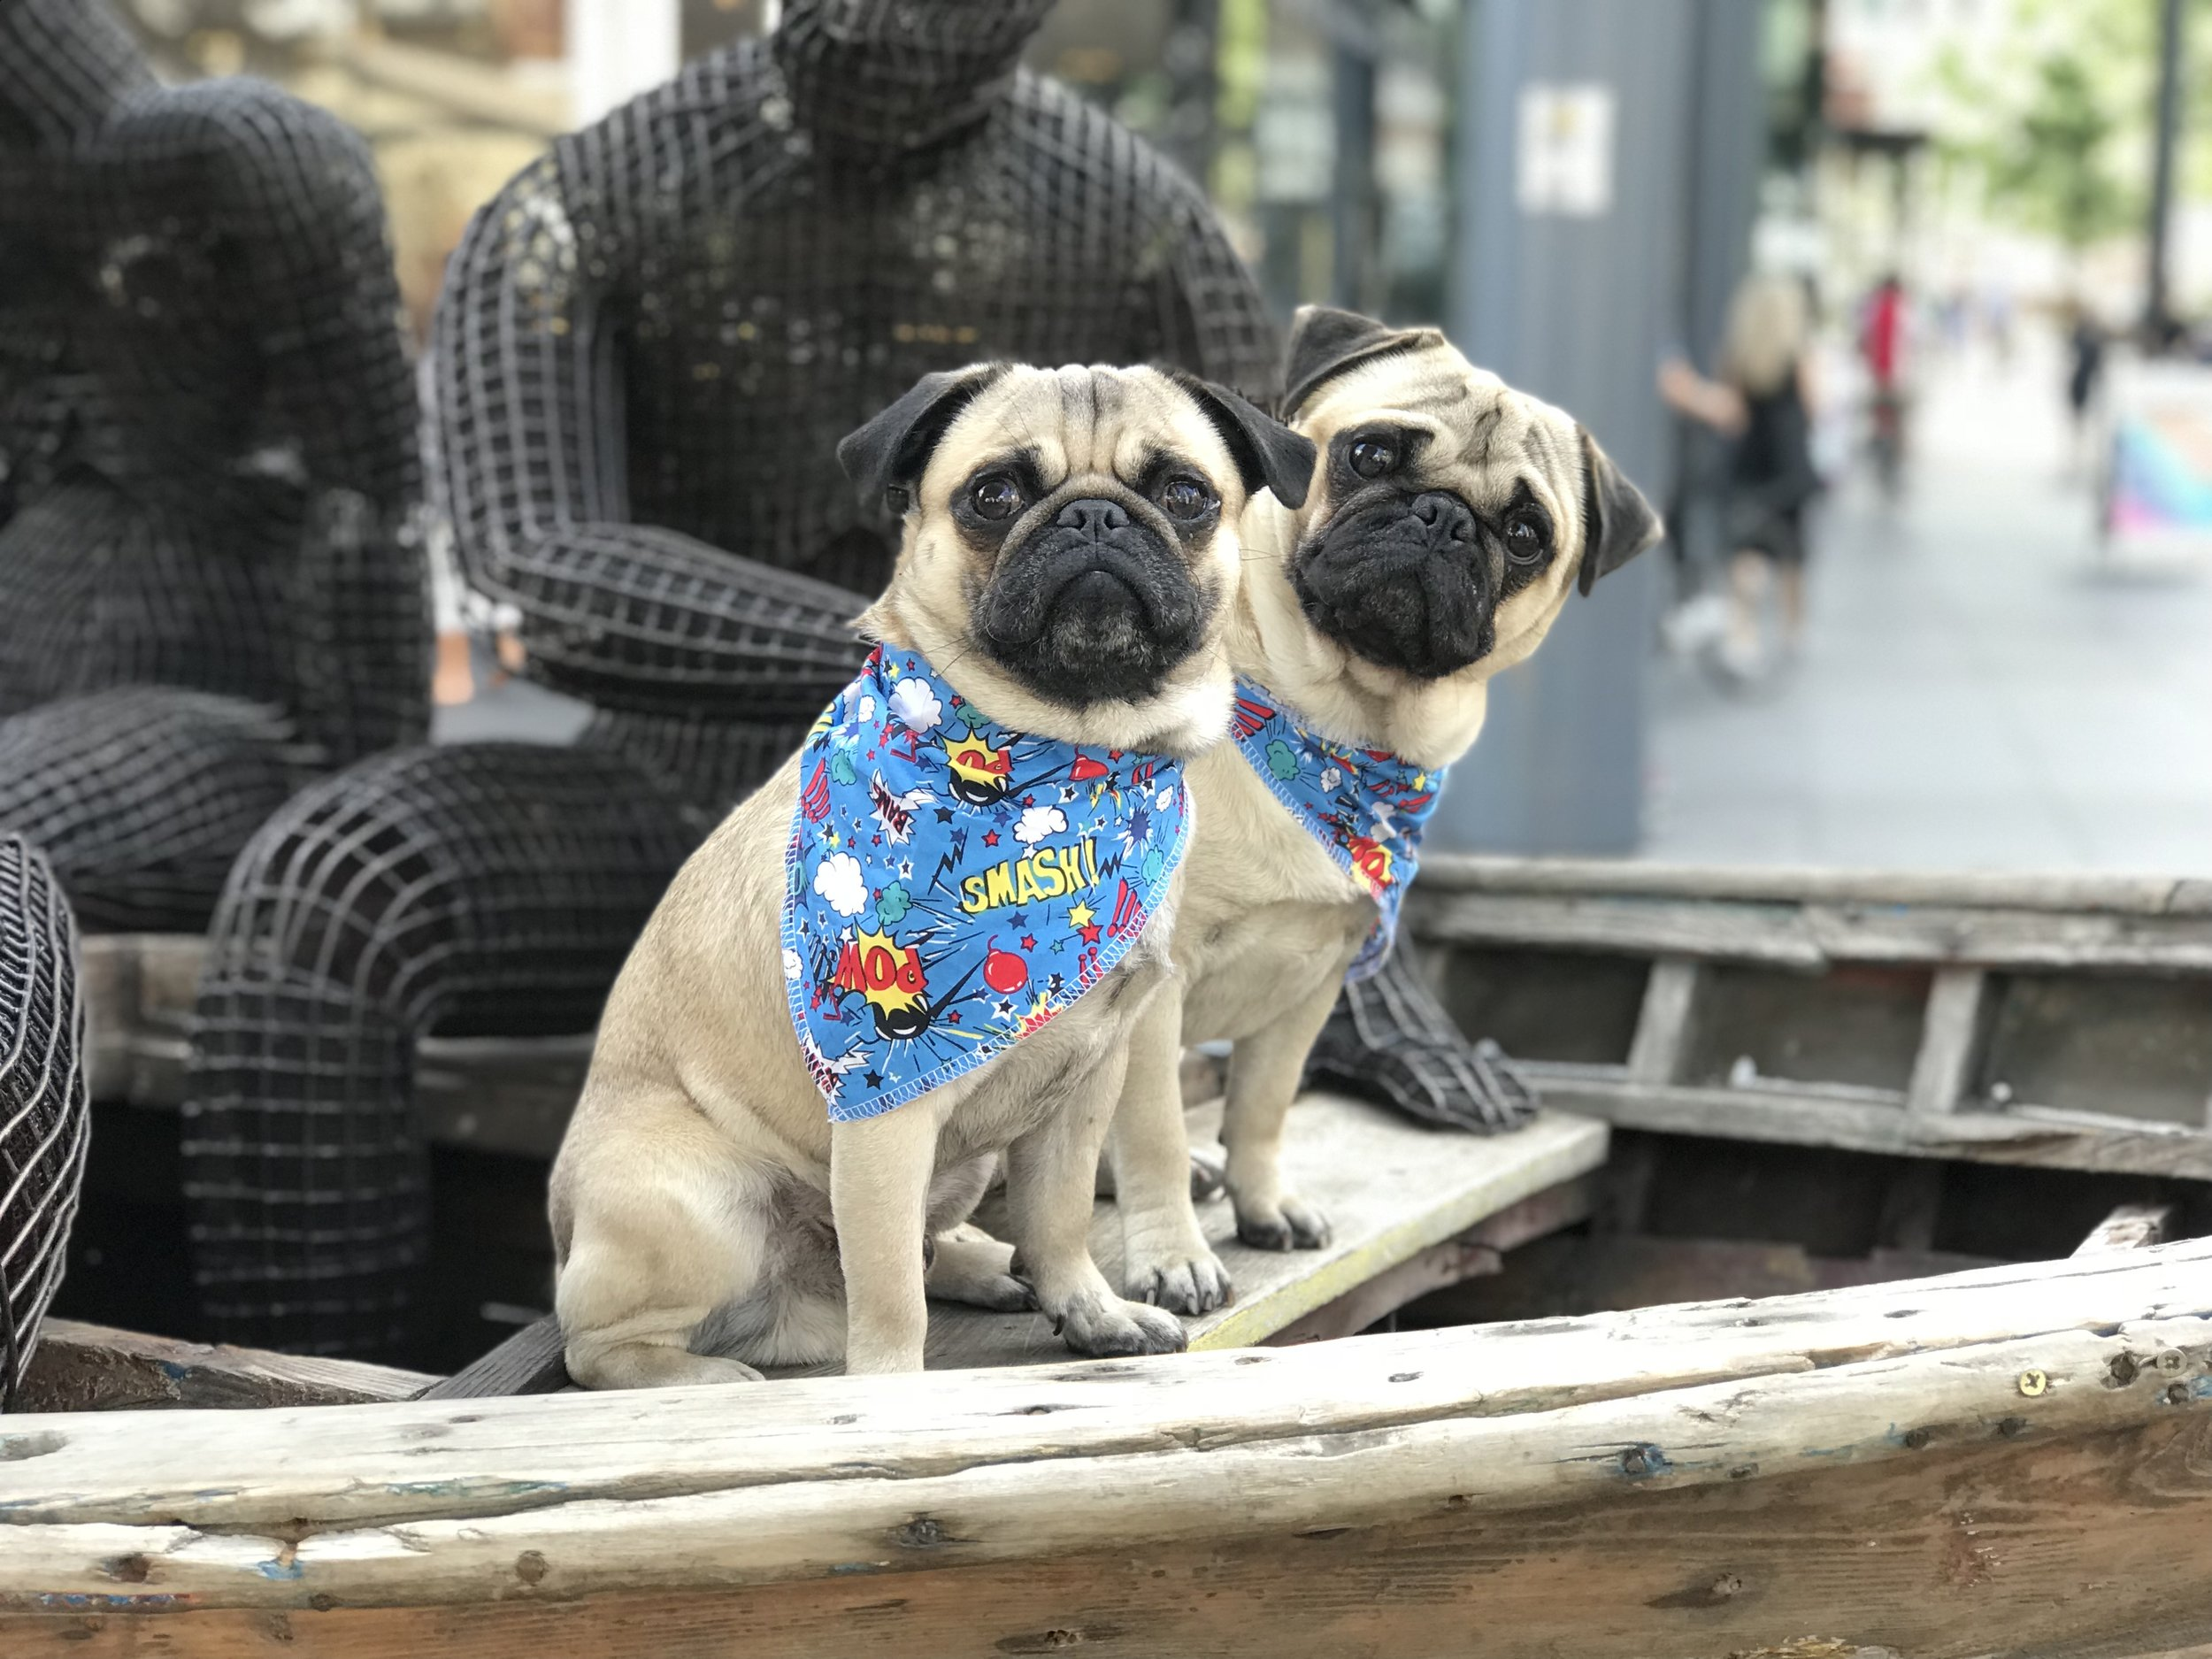 Come and meet our office pugs Gaston & Bruce.